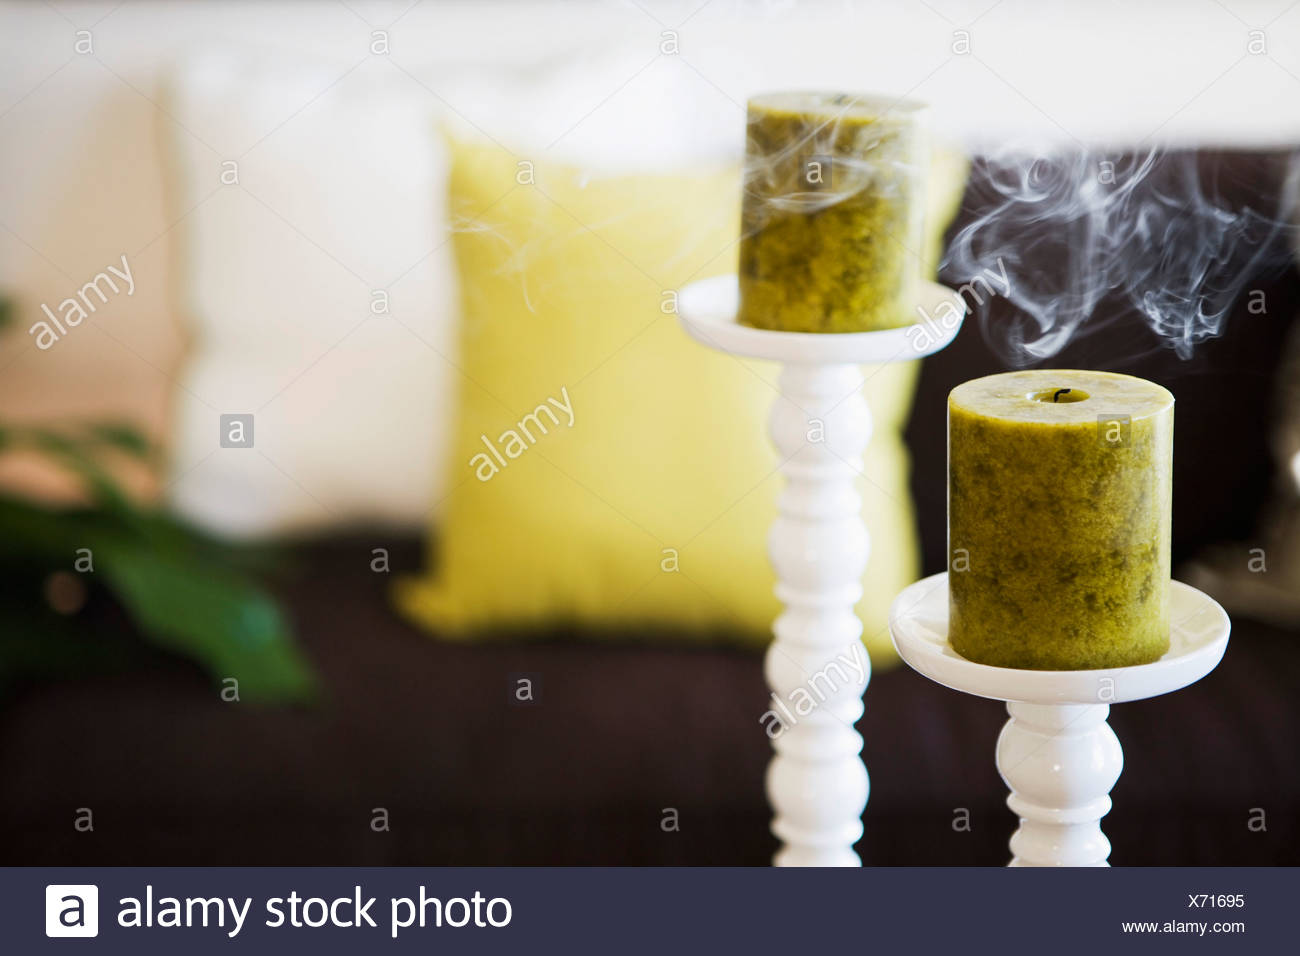 Two Unlit Candles with Smoke on Tall Candlesticks - Stock Image